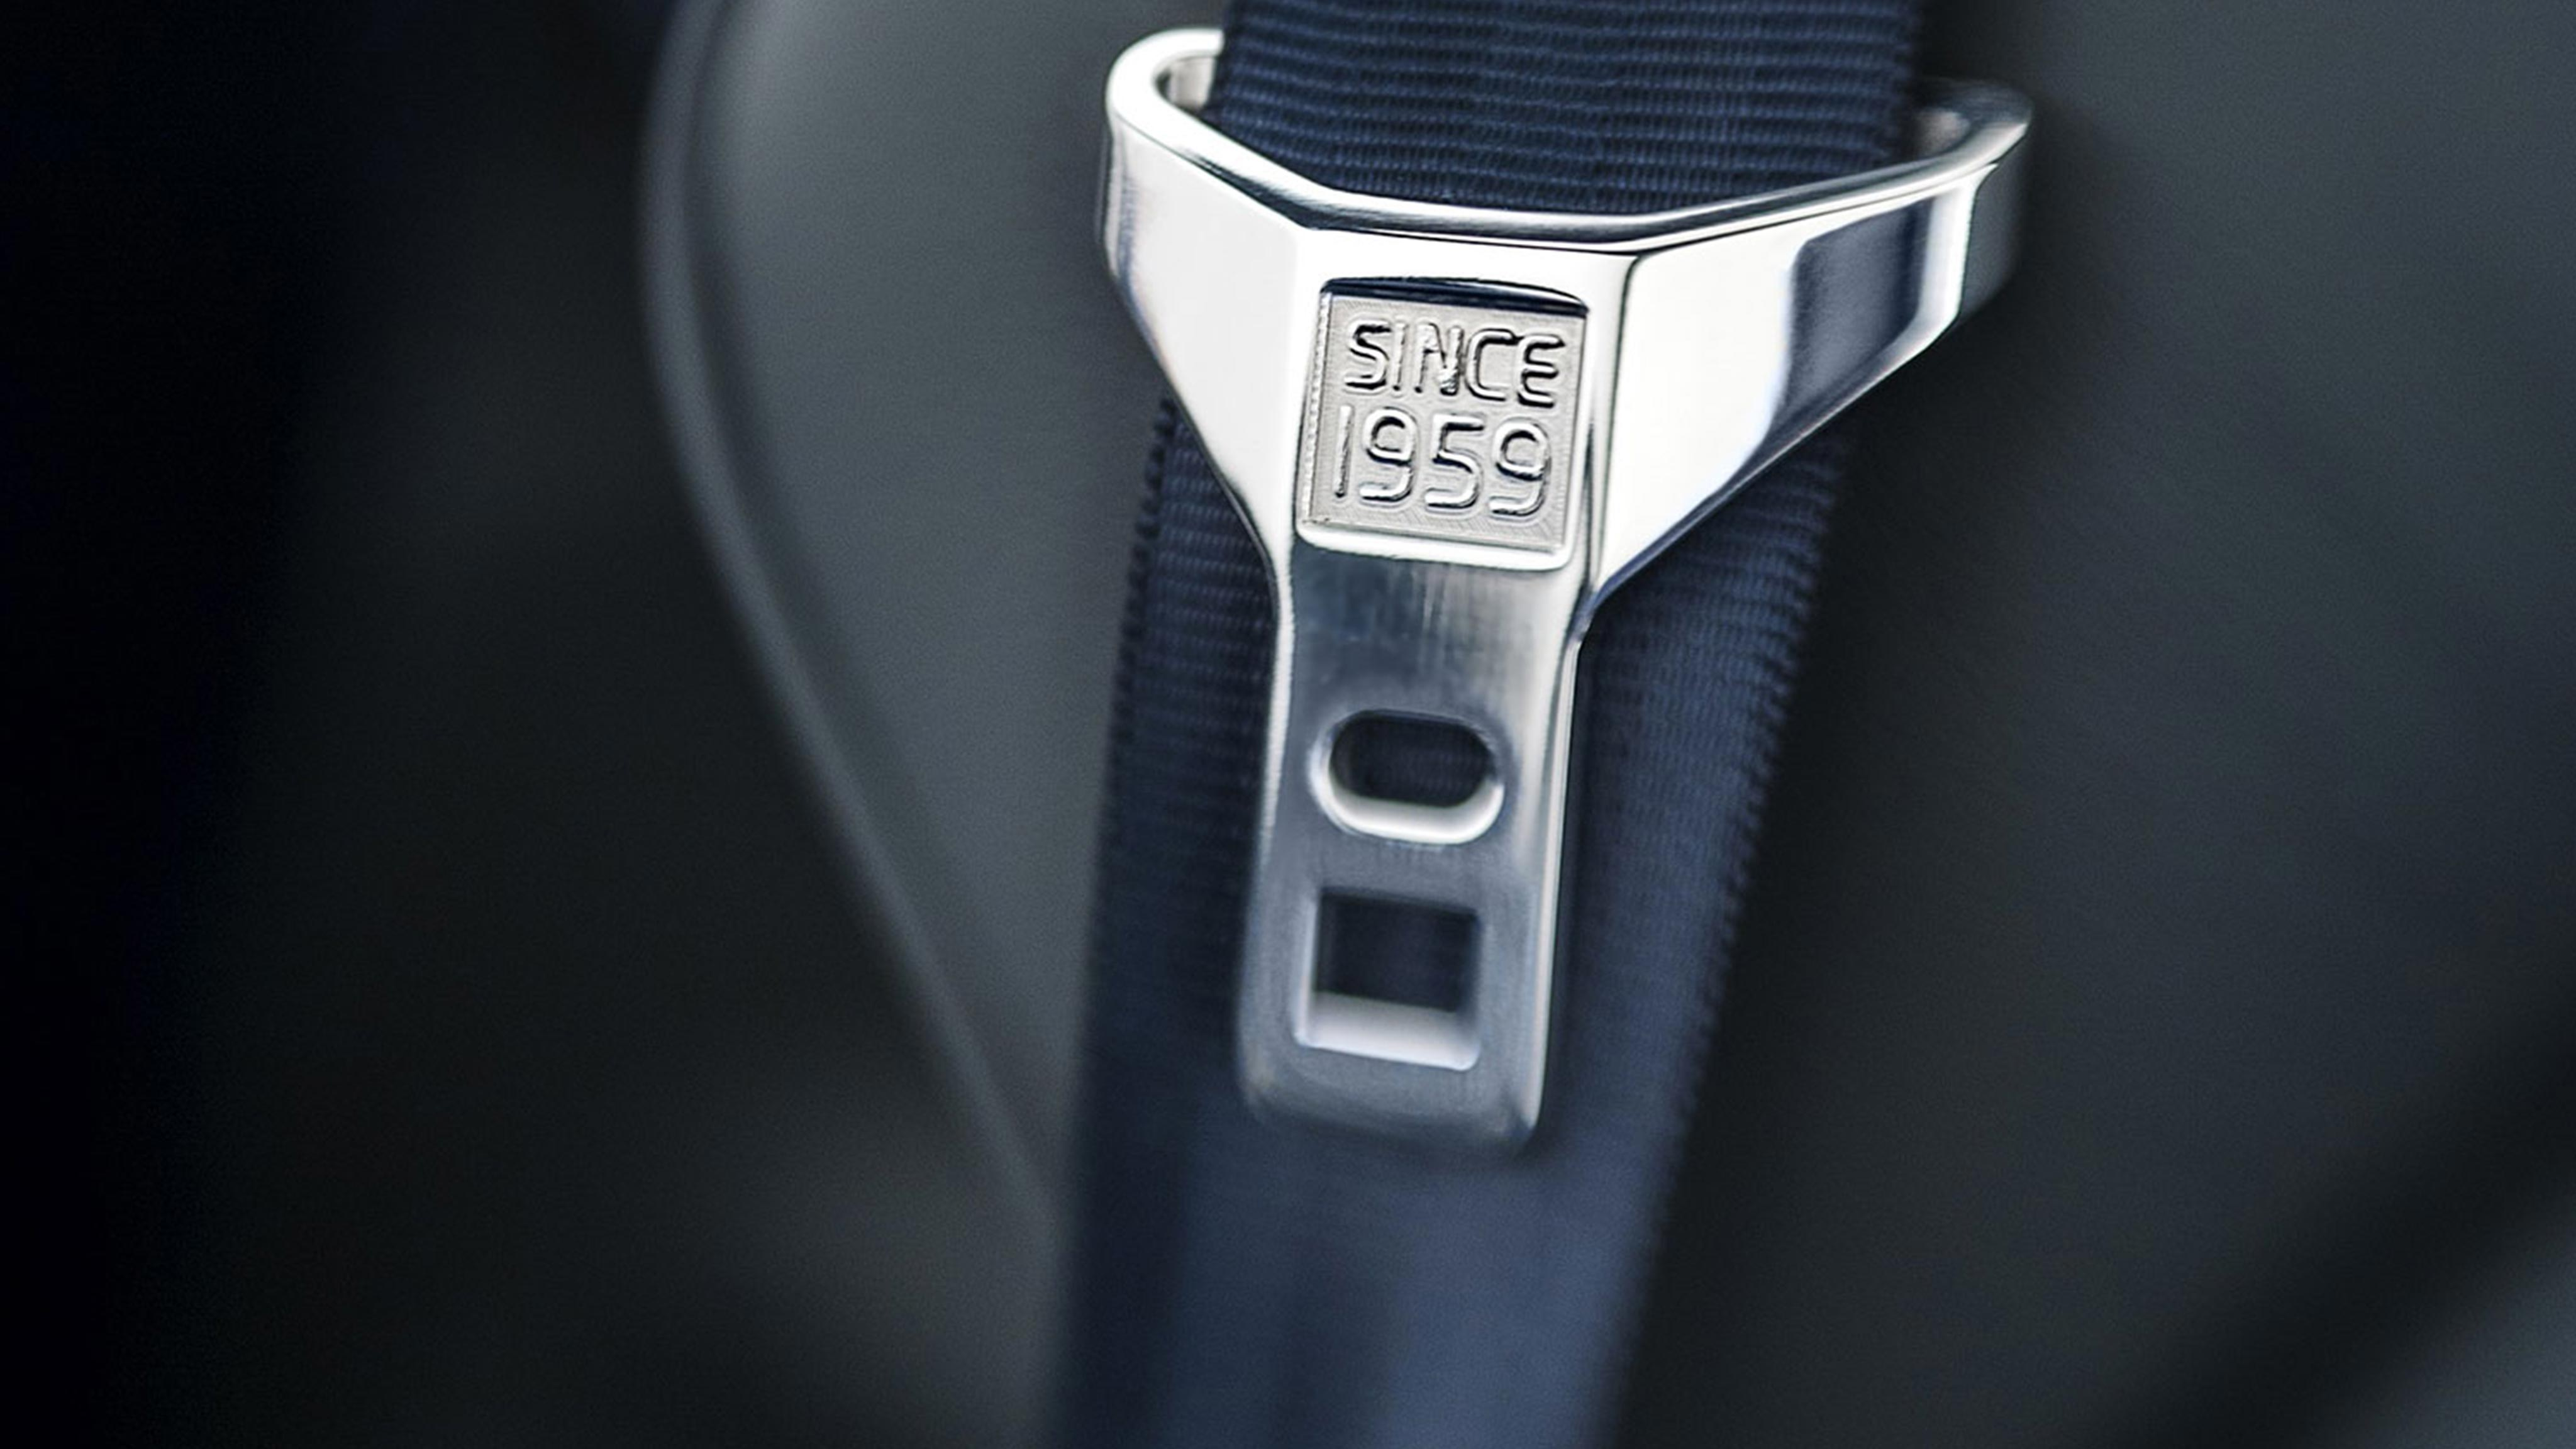 Volvo's first seatbelt